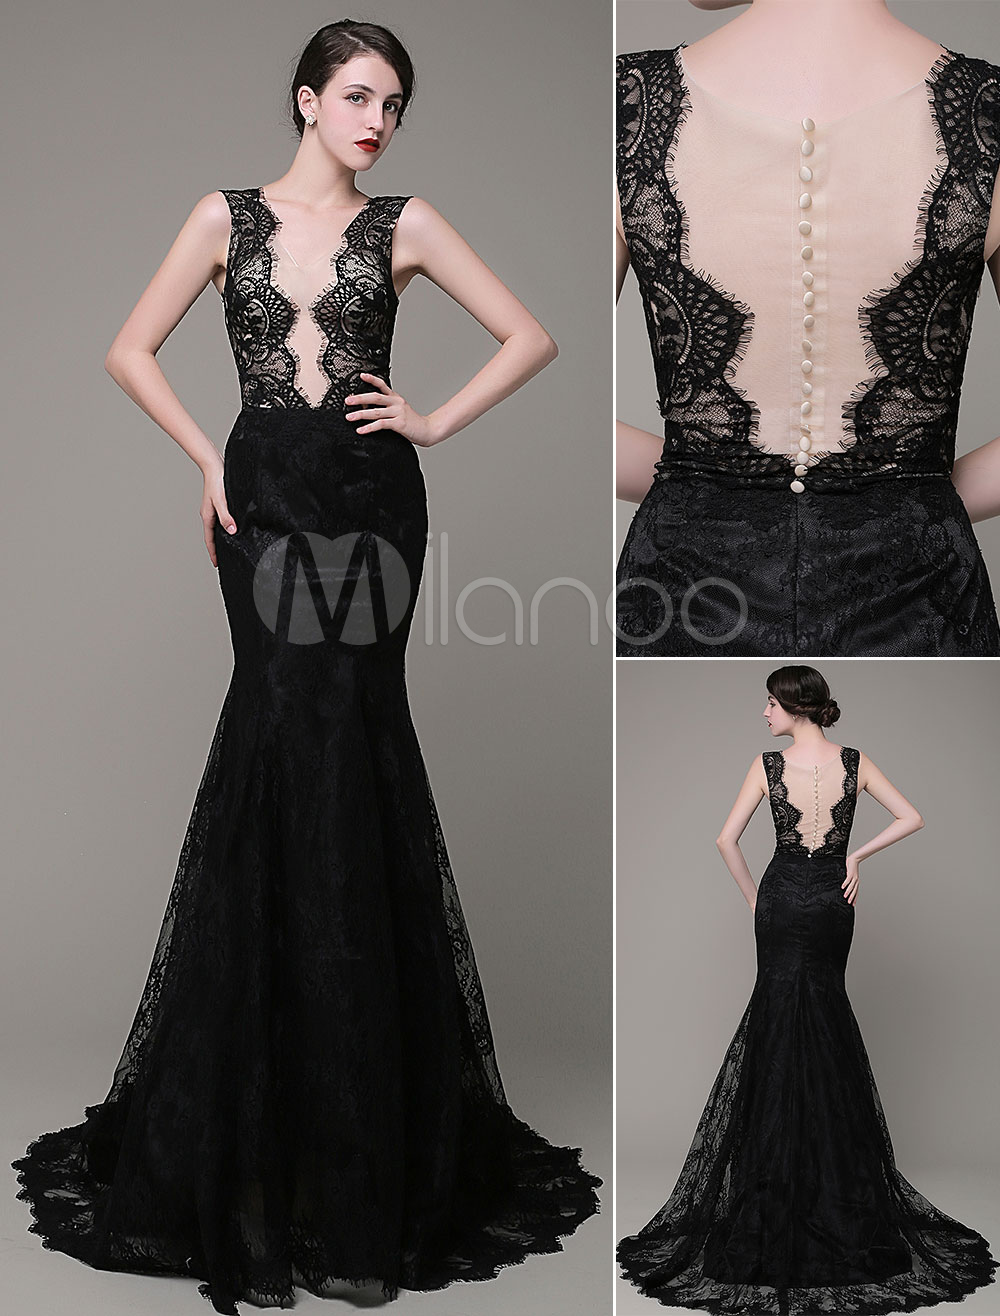 Mermaid Evening Dress V-Neck Lace Illusion Backless Court Train Celebration Dress Milanoo